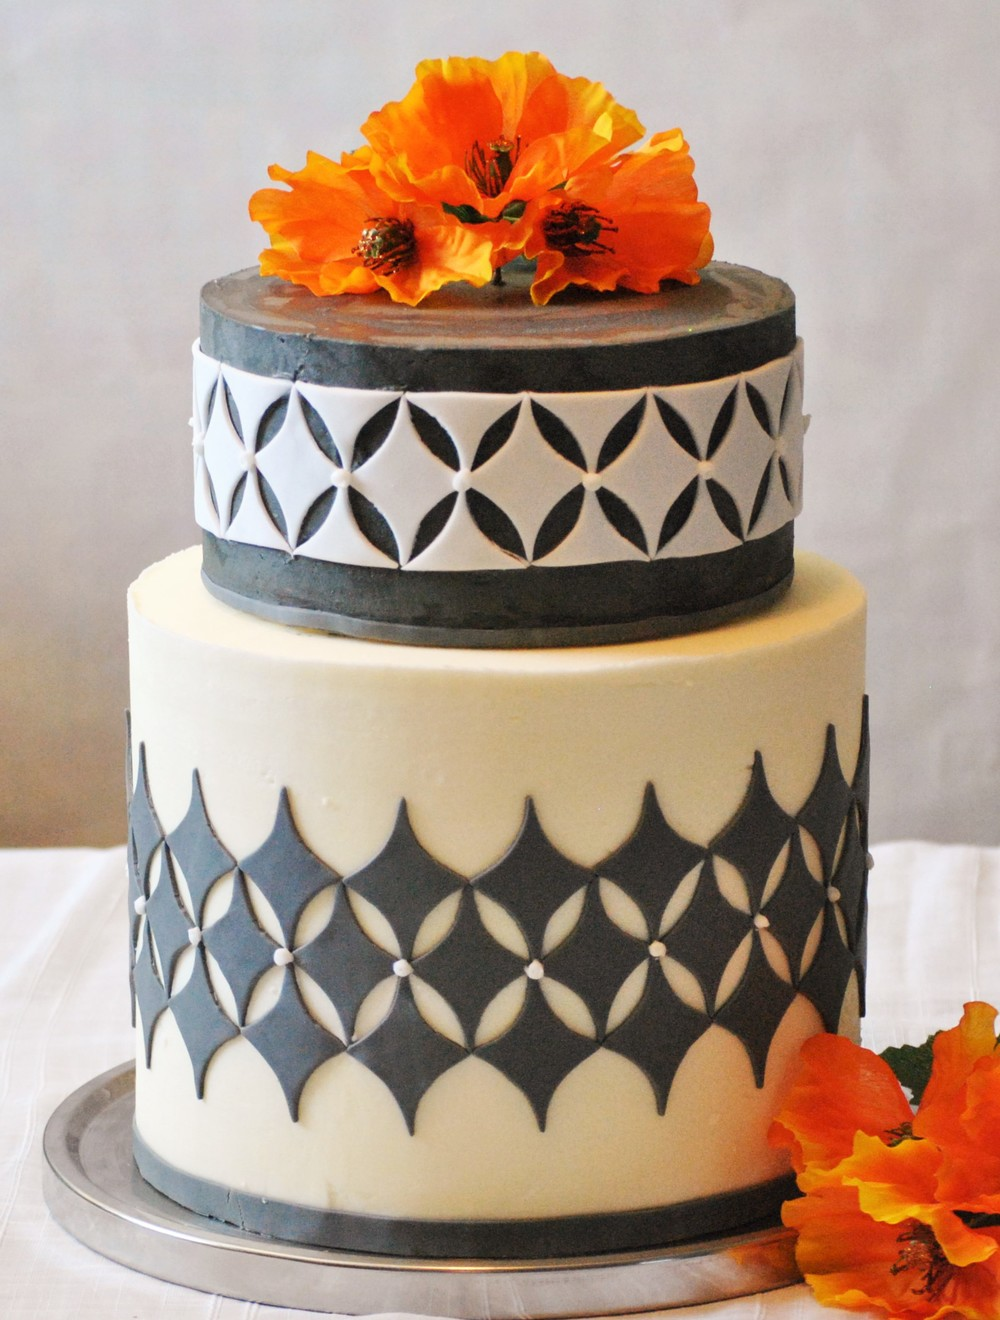 Black and White Birthday Cake Richmond, VA